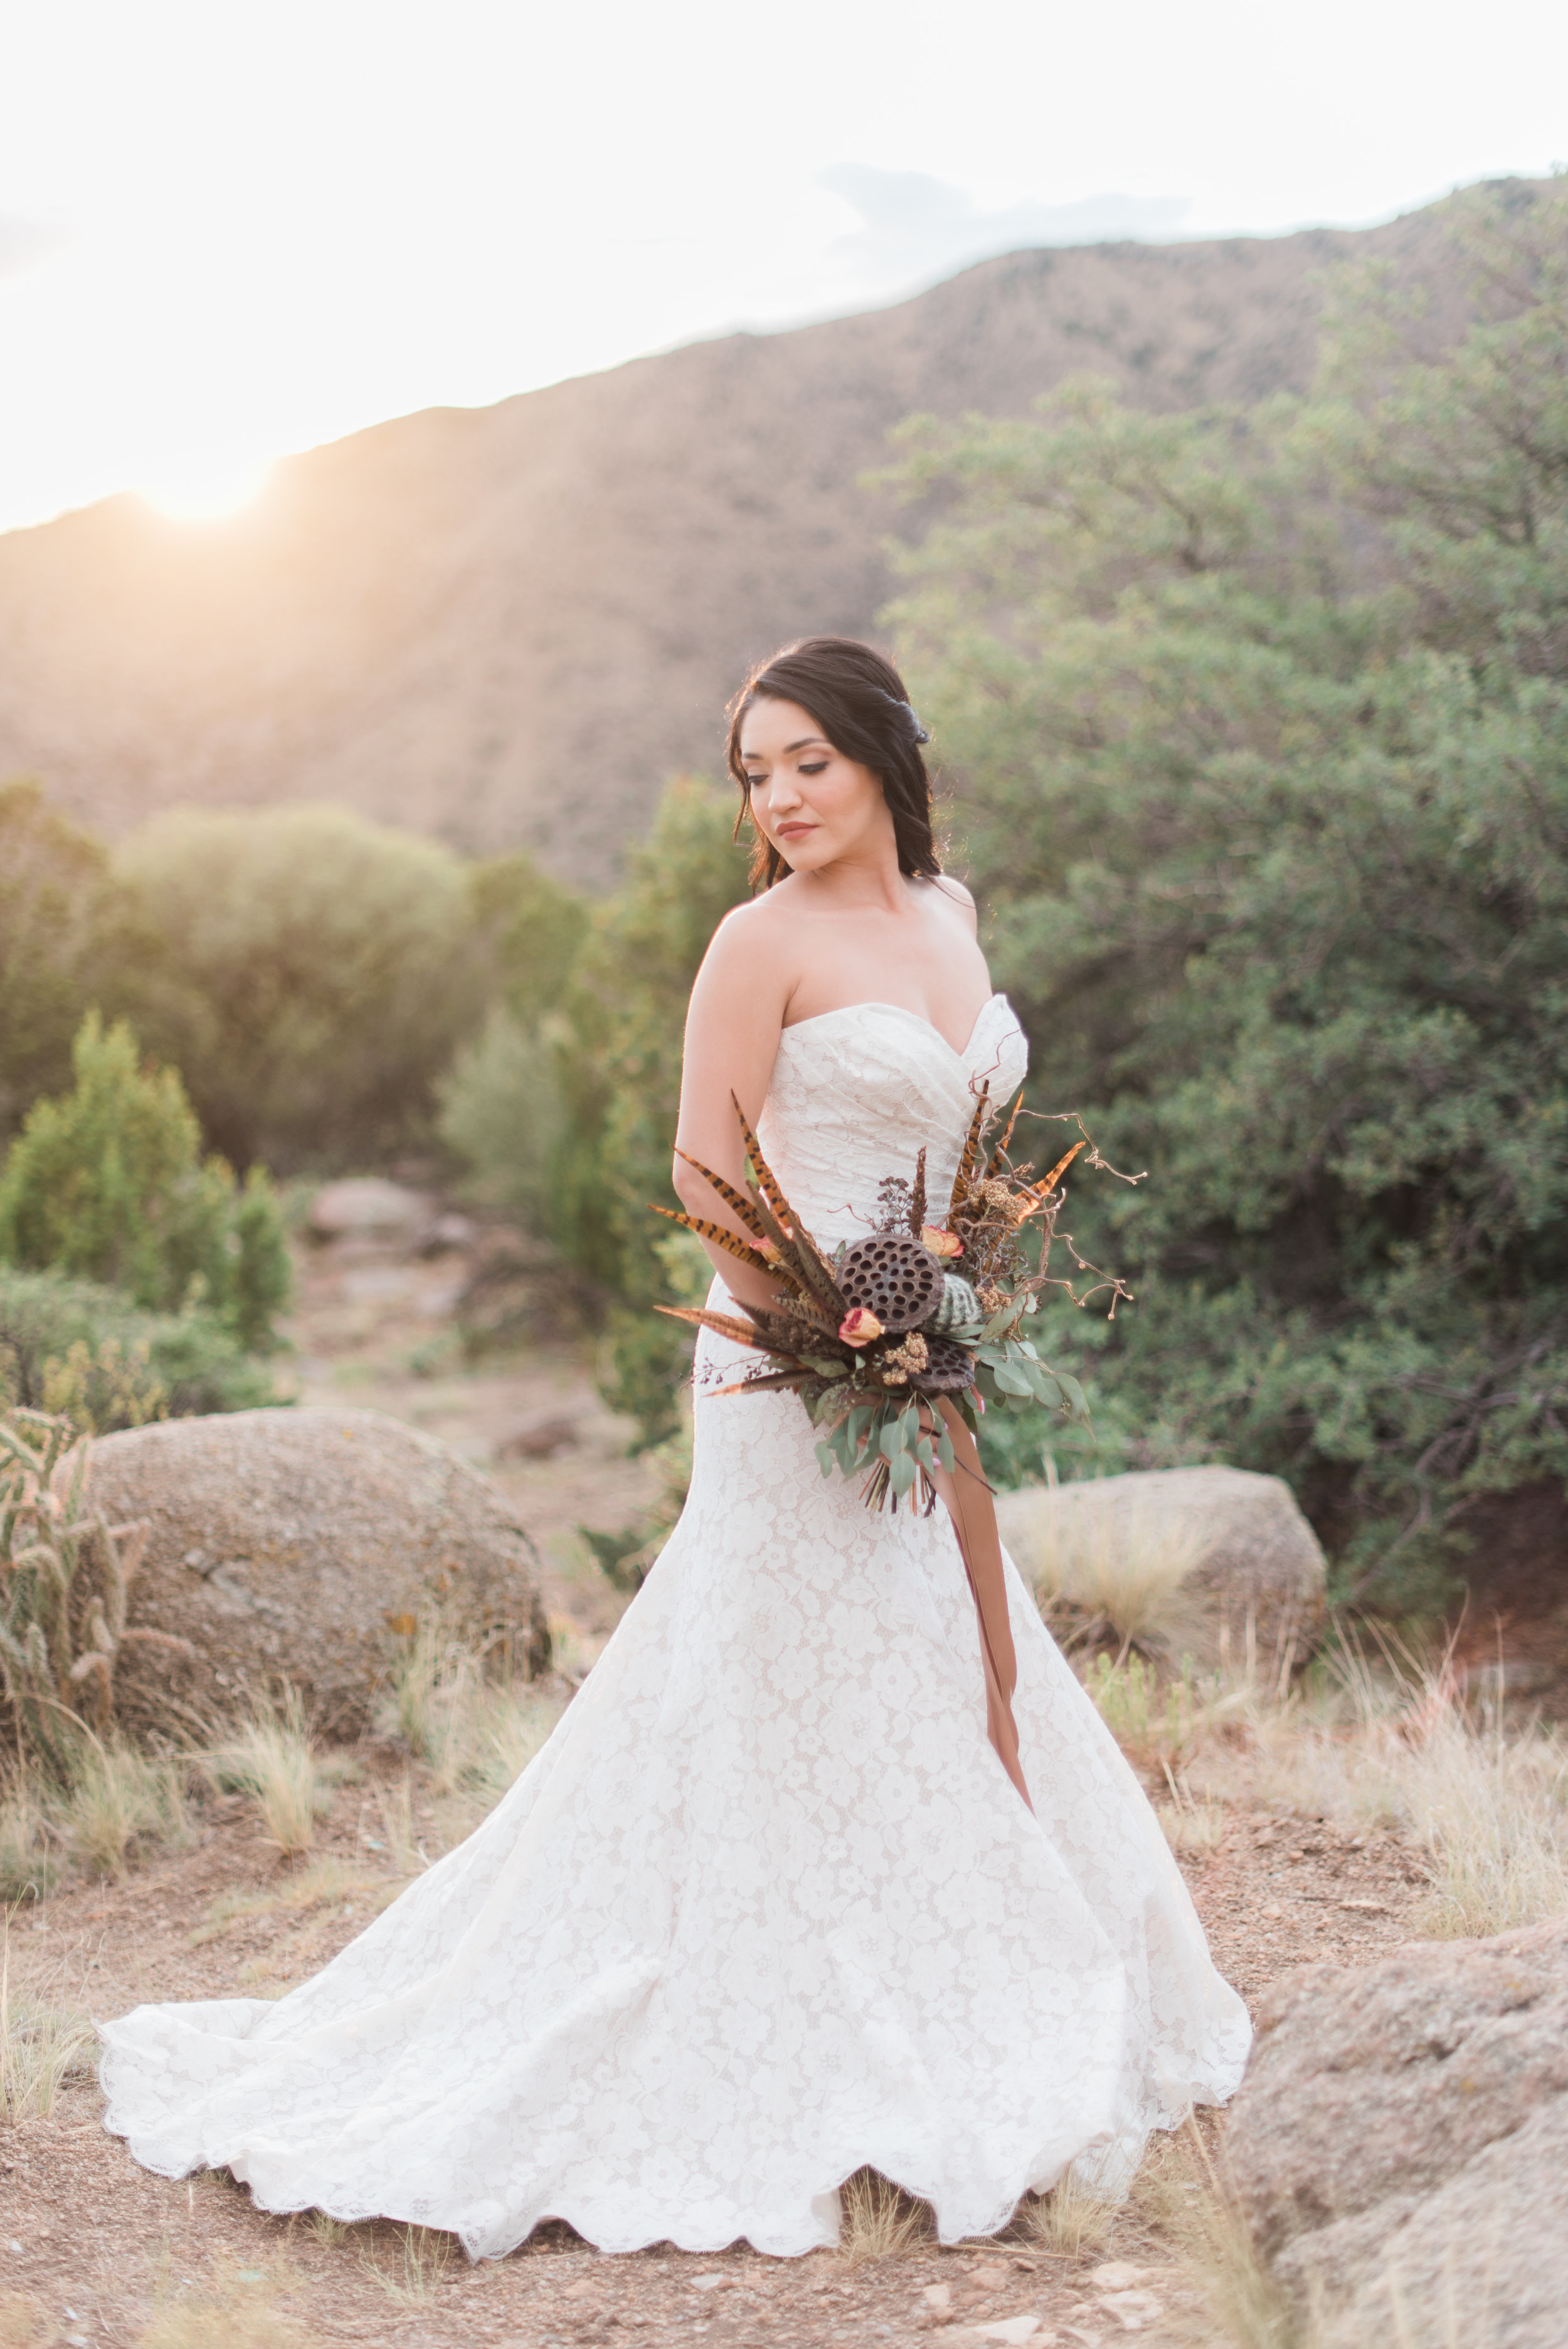 Editorial: Published online & in print. New Mexico Perfect Wedding Guide. Photographer: Briana Nicole Photography. Sandia Foothills, New Mexico.